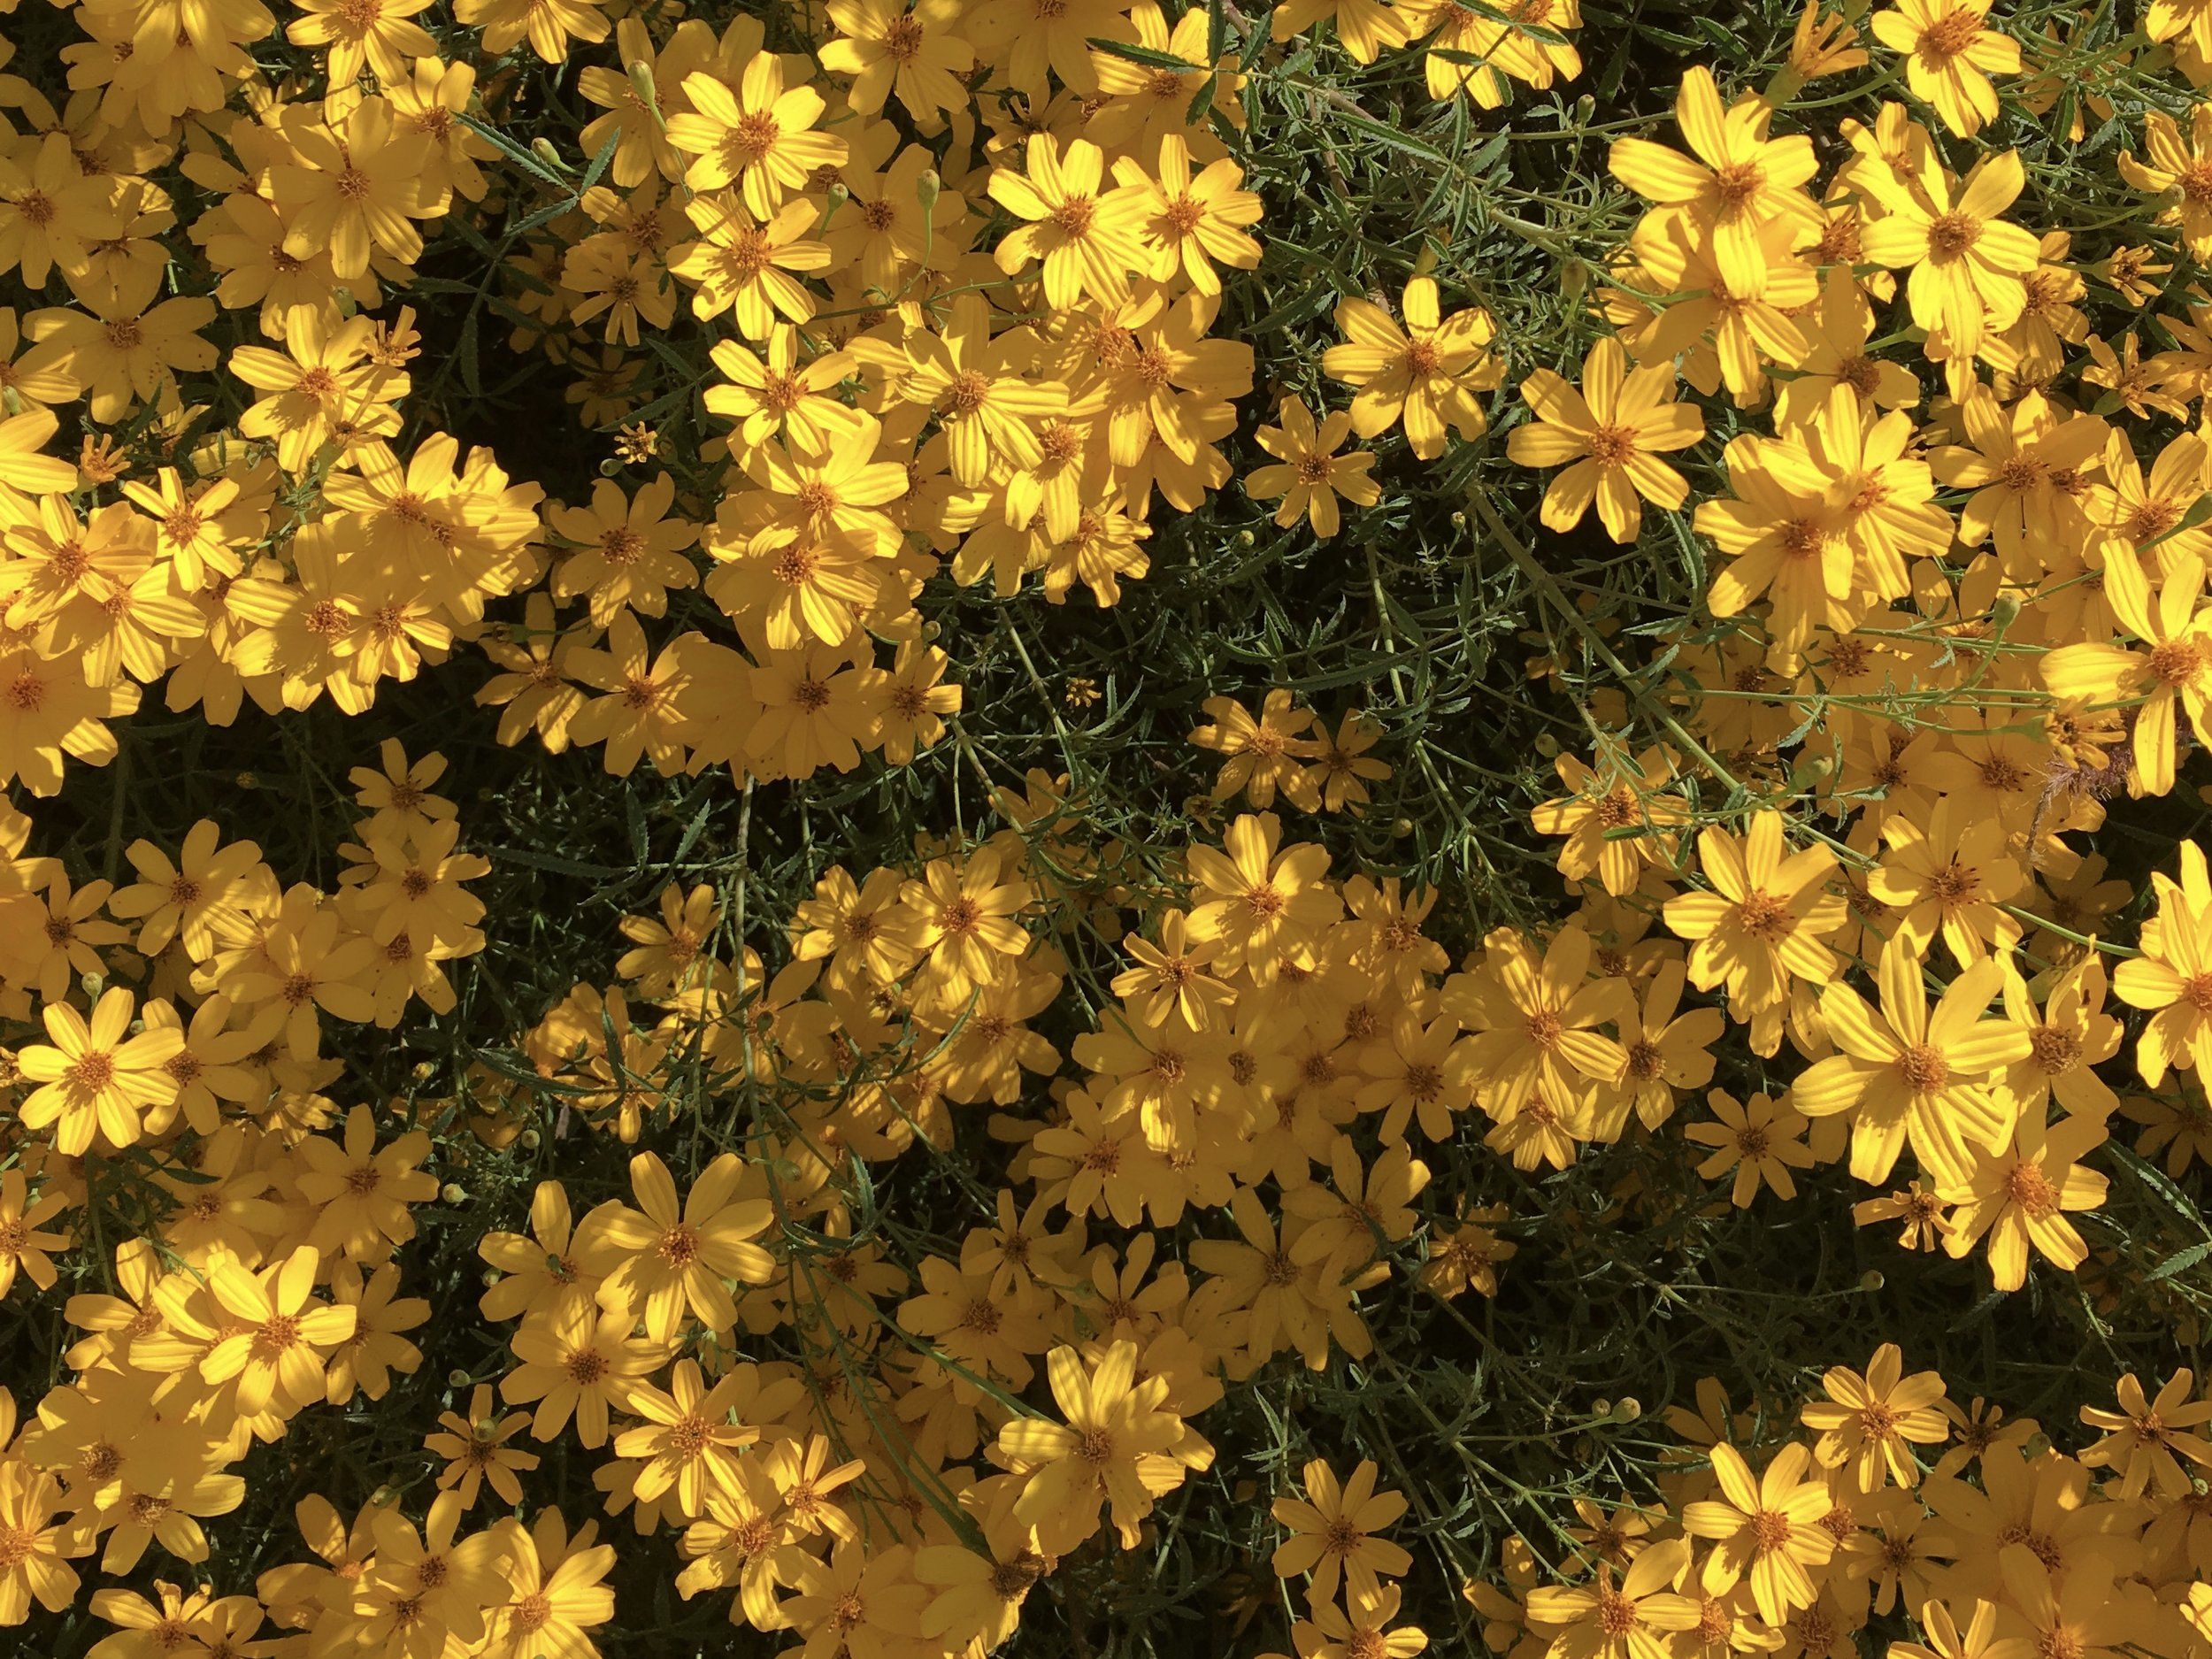 And it is fall in my street-side garden, Mexican marigold—Tagetes lemmonii